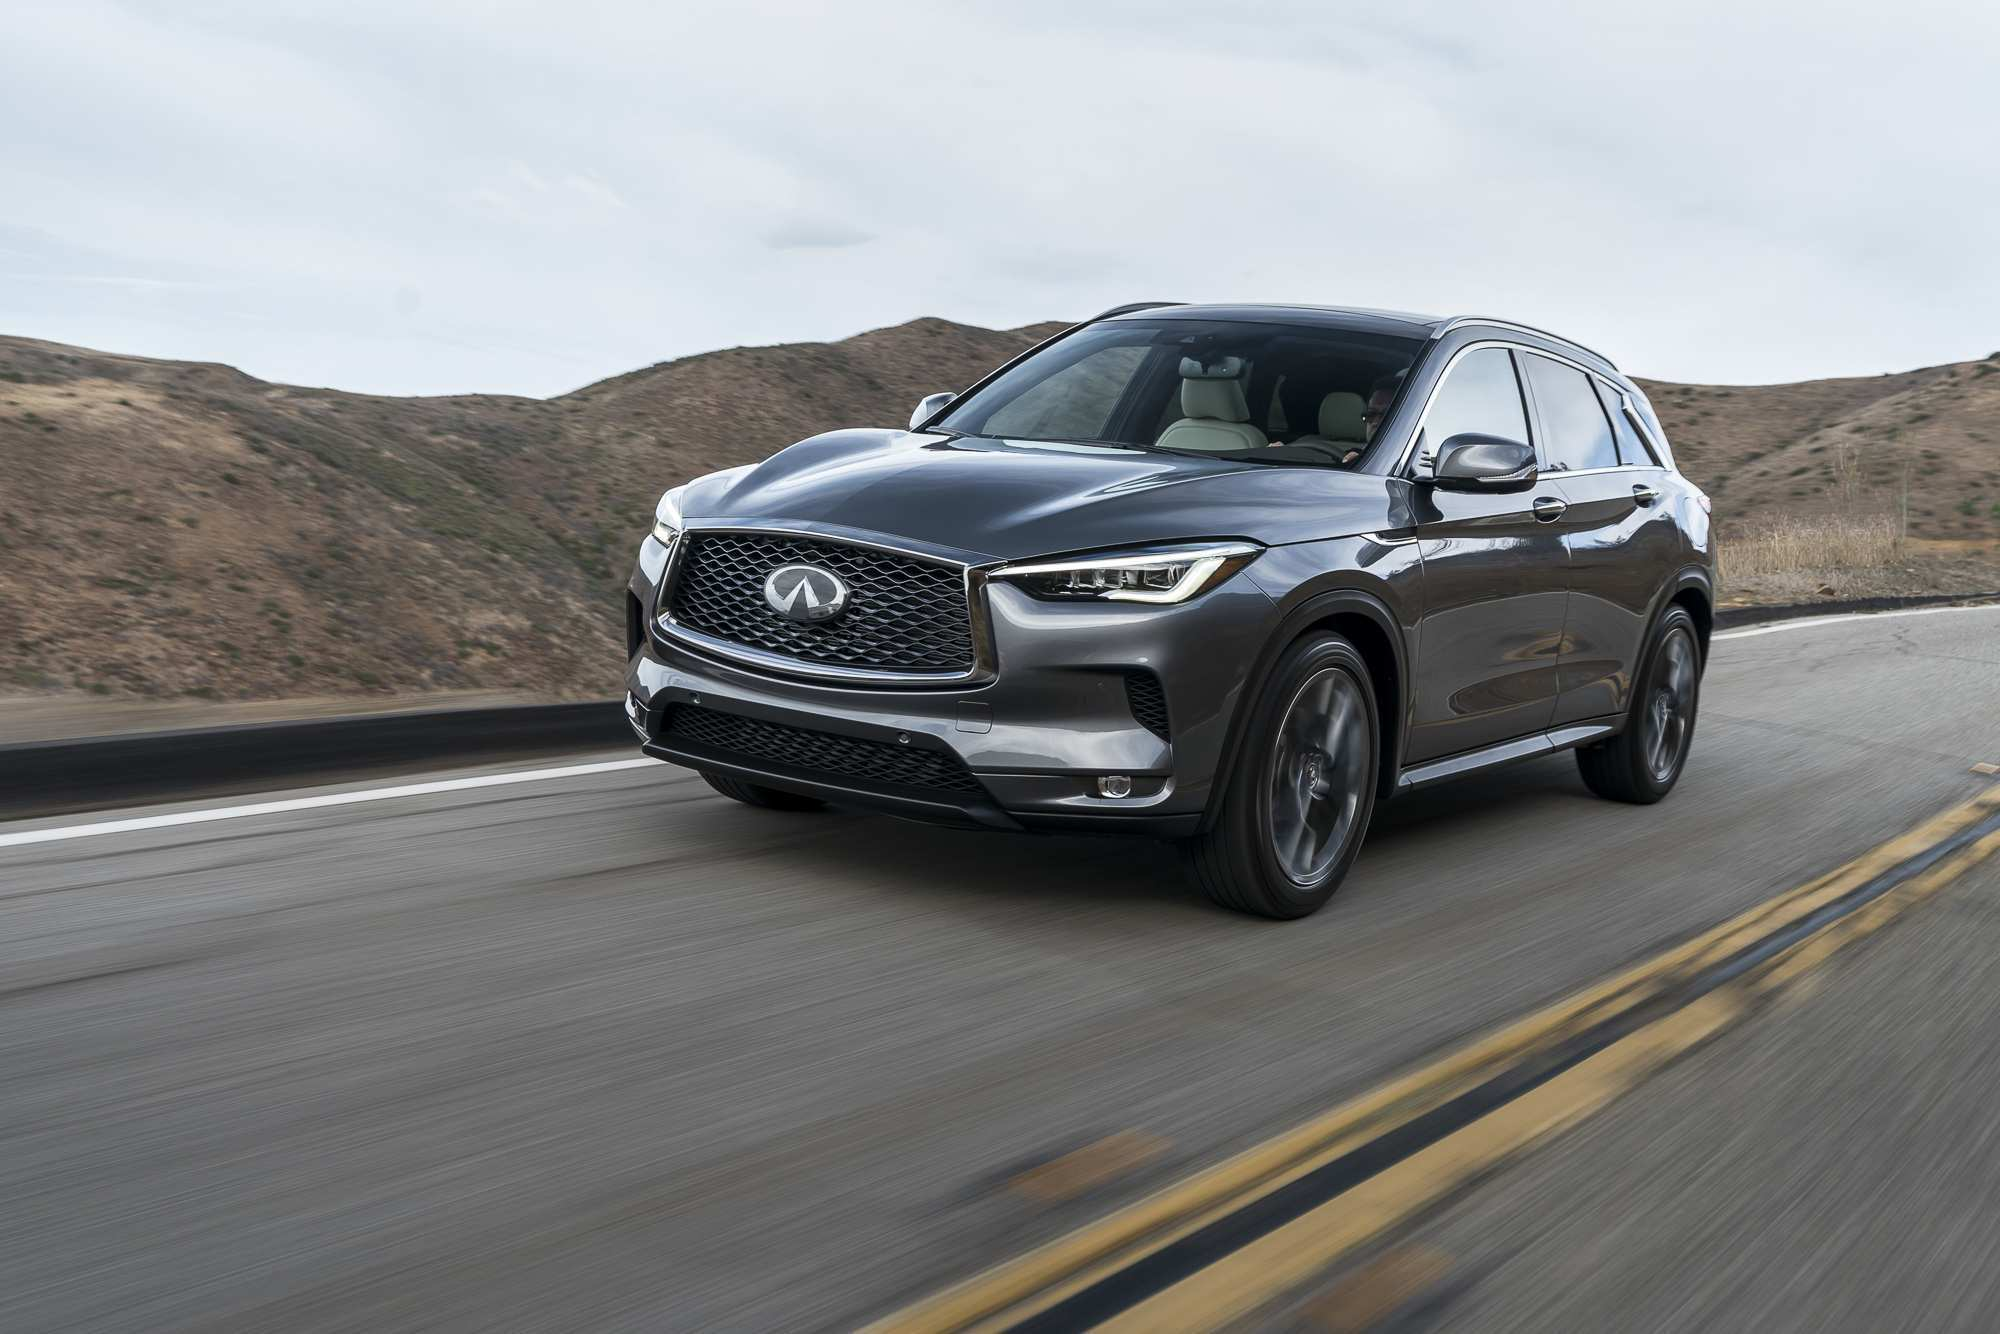 50 Gallery of 2019 Infiniti Qx50 Review Wallpaper with 2019 Infiniti Qx50 Review